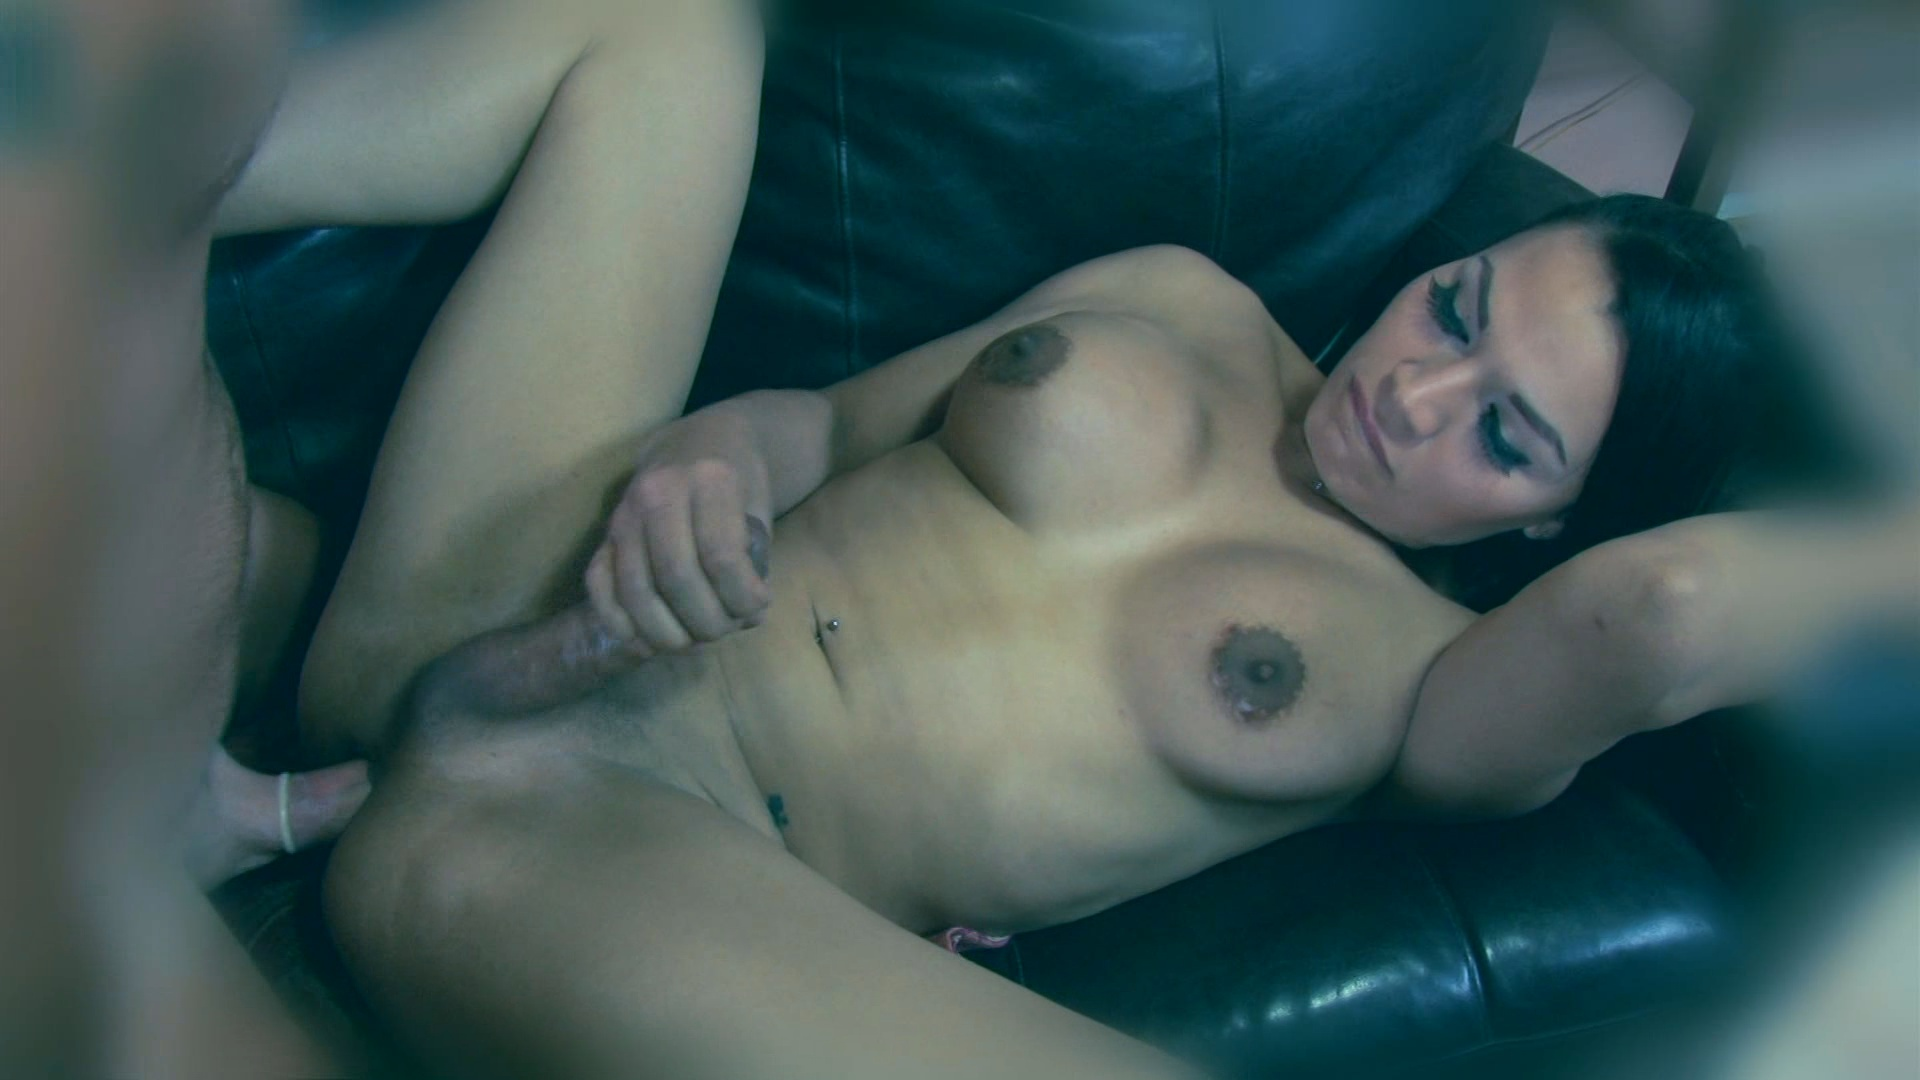 Transsexual Babysitters 22 / Watch big she-cocks slide all the way into tight male assholes in this wickedly sexy shemale clip from Devil's Film!